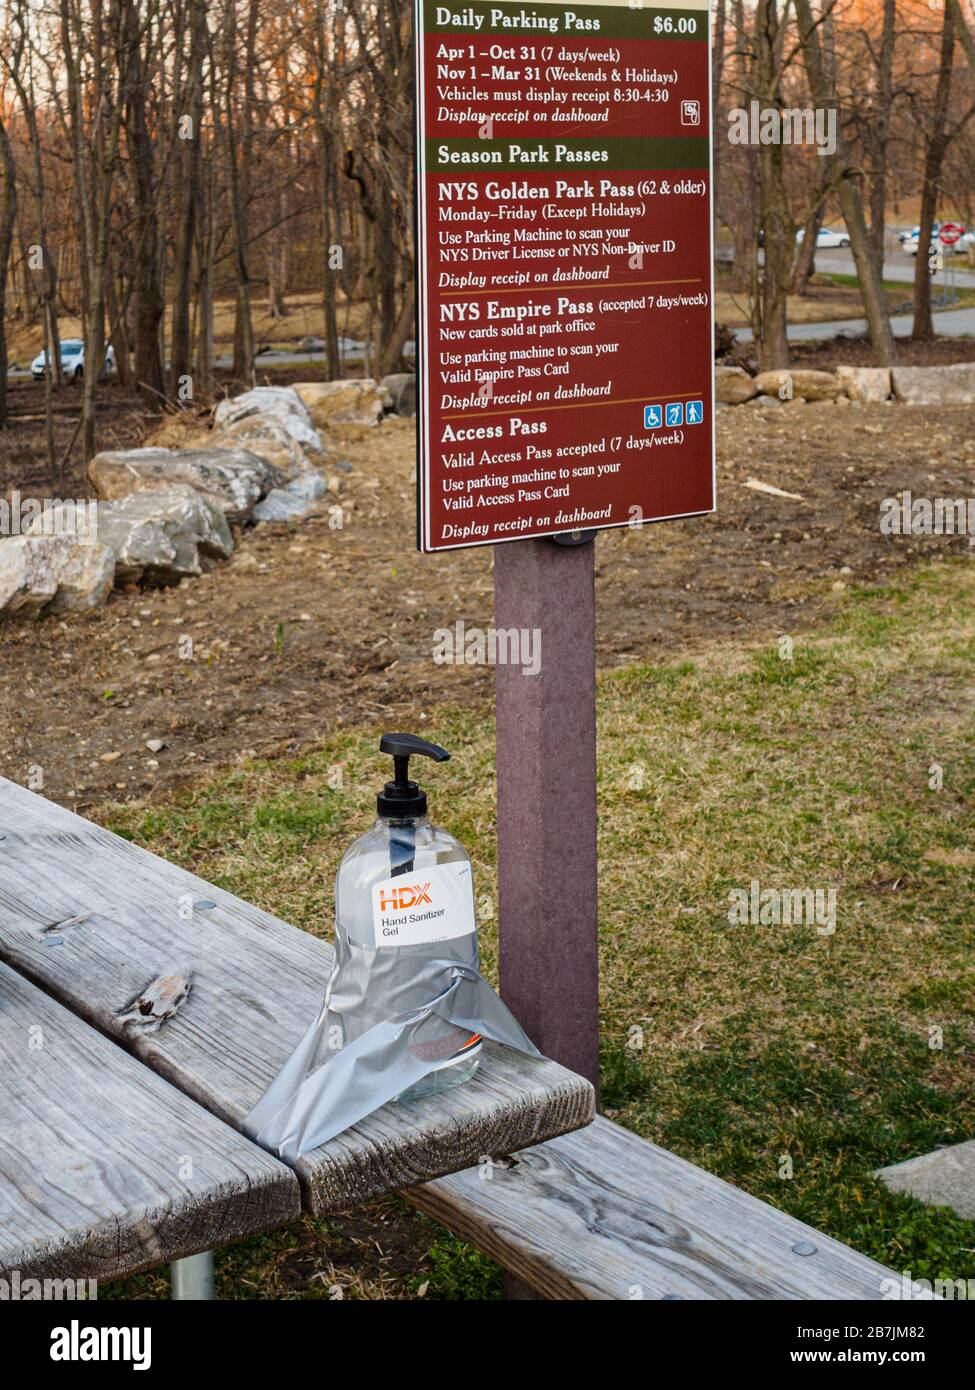 westchester-county-new-york-15-march-2020-a-bottle-of-hand-sanitizer-is-secured-by-duck-tape-in-the-parking-lot-of-rockefeller-state-park-preserve-for-hikers-westchester-county-currently-has-the-highest-incidence-of-coronavirus-in-the-state-due-to-shortages-there-have-been-reports-of-people-stealing-hand-sanitizer-from-offices-and-other-public-spaces-2B7JM82.jpg